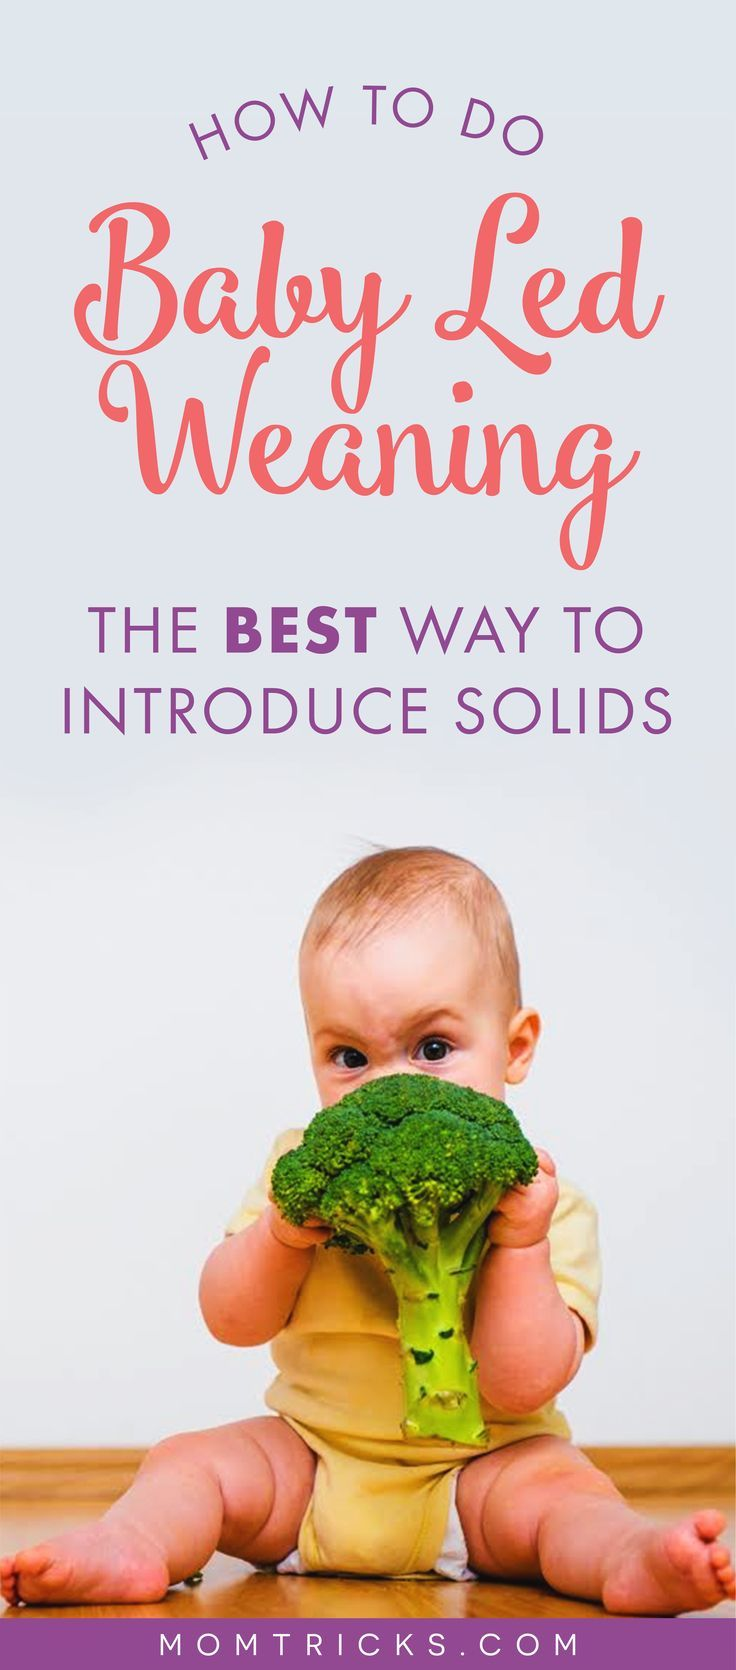 Baby-led weaning is the practice of offering only whole foods to the baby, not purees or